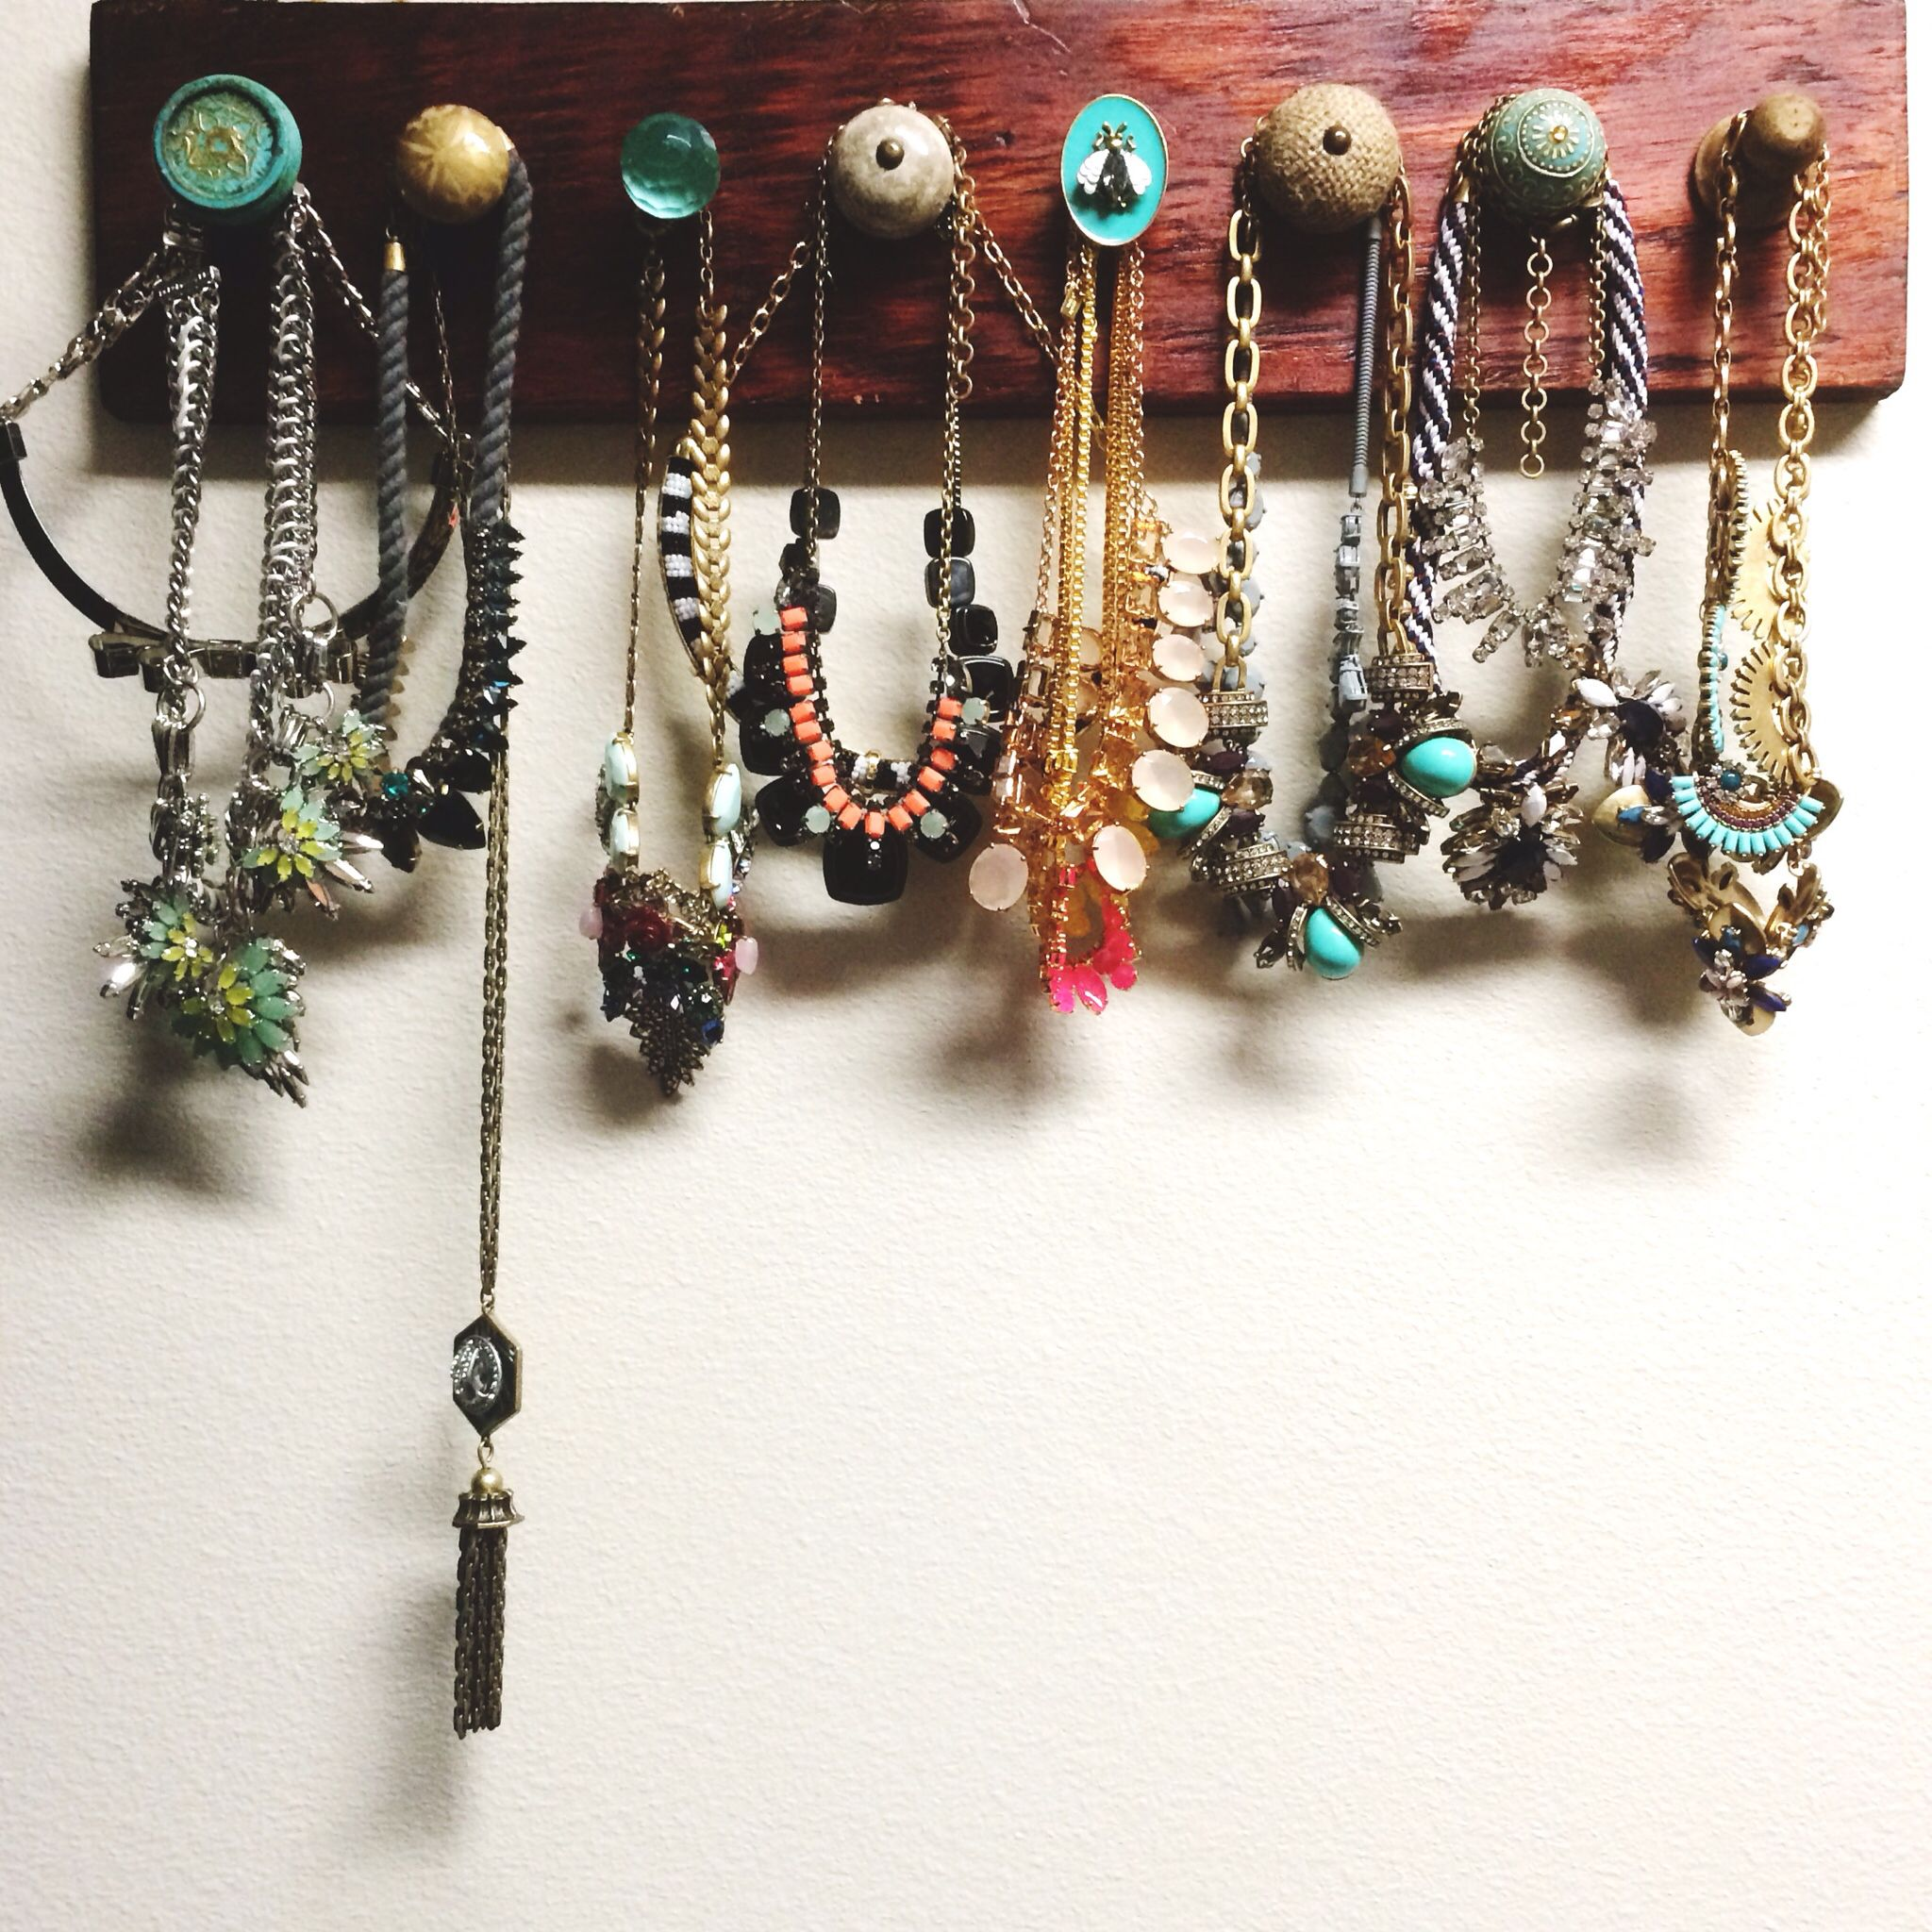 Necklace Organizer Jewelry Organizer DIY Bee Glasbury knob